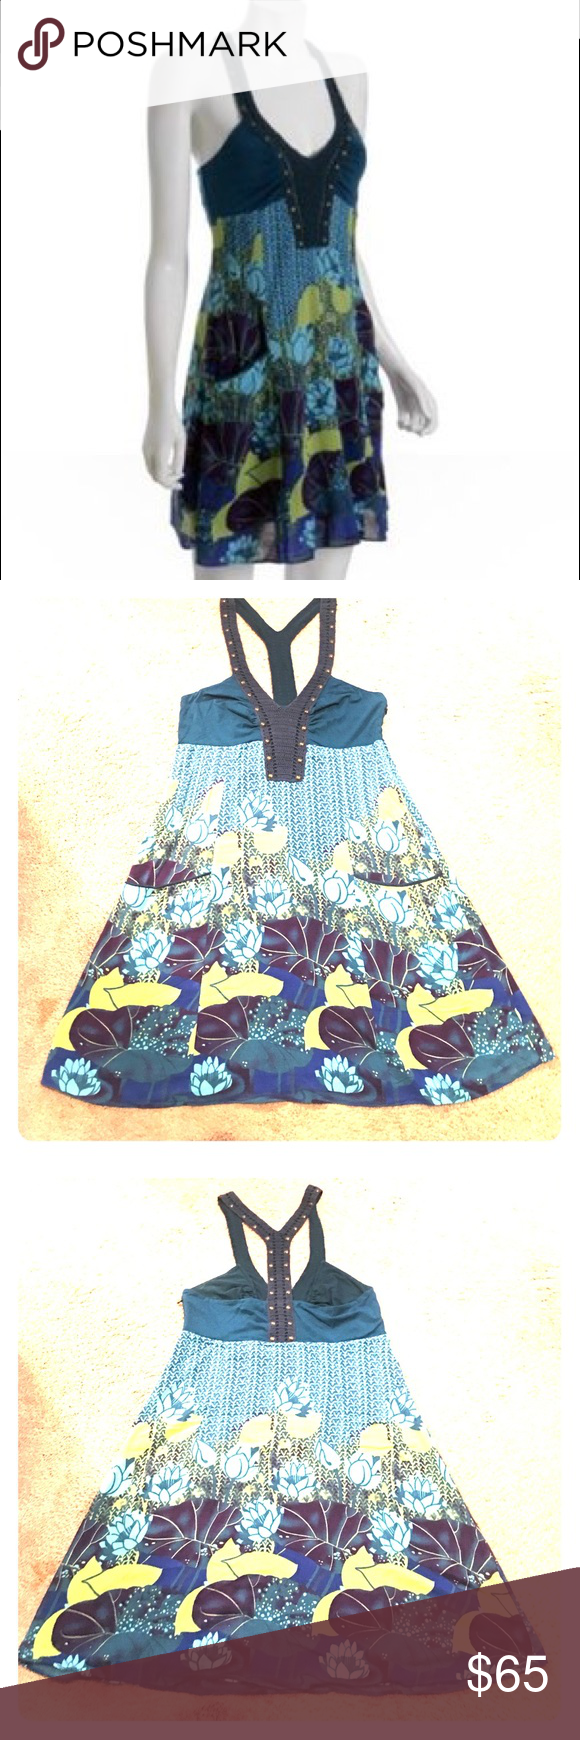 ⚡SALE⚡EUC Free People studded racerback dress Light and airy Free People teal floral print racerback dress. This dress has extra crochet detail with studs and pockets on the front. Side zip size 12. Free People Dresses Midi